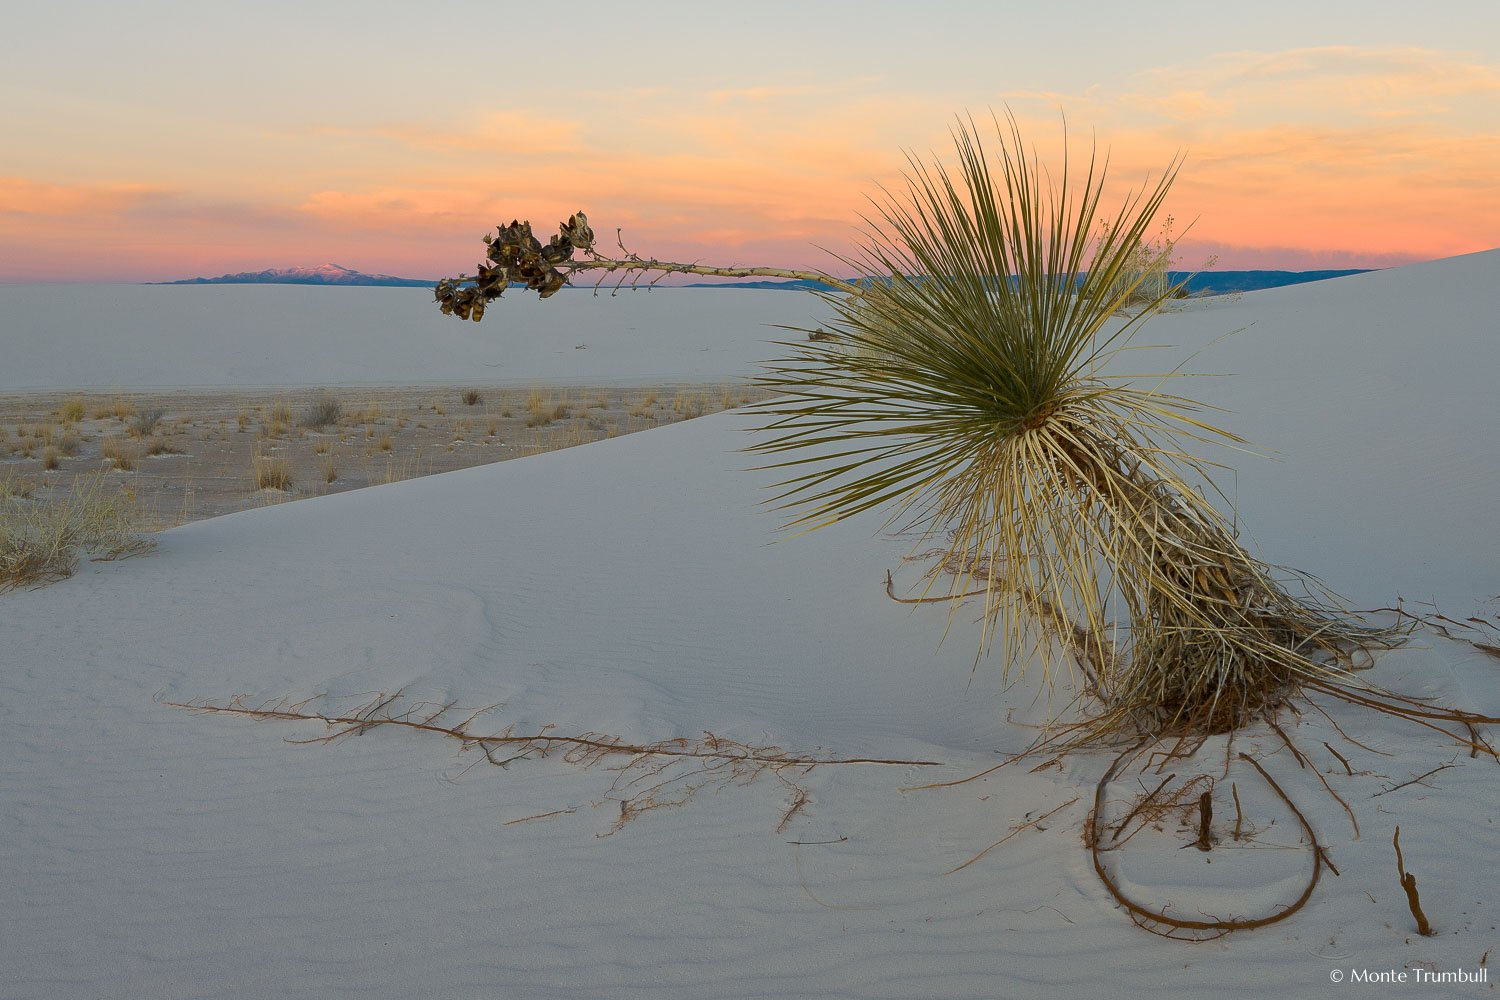 MT-20090107-171519-0011-New-Mexico-White-Sands-National-Monument-yucca-sunset-mountains.jpg